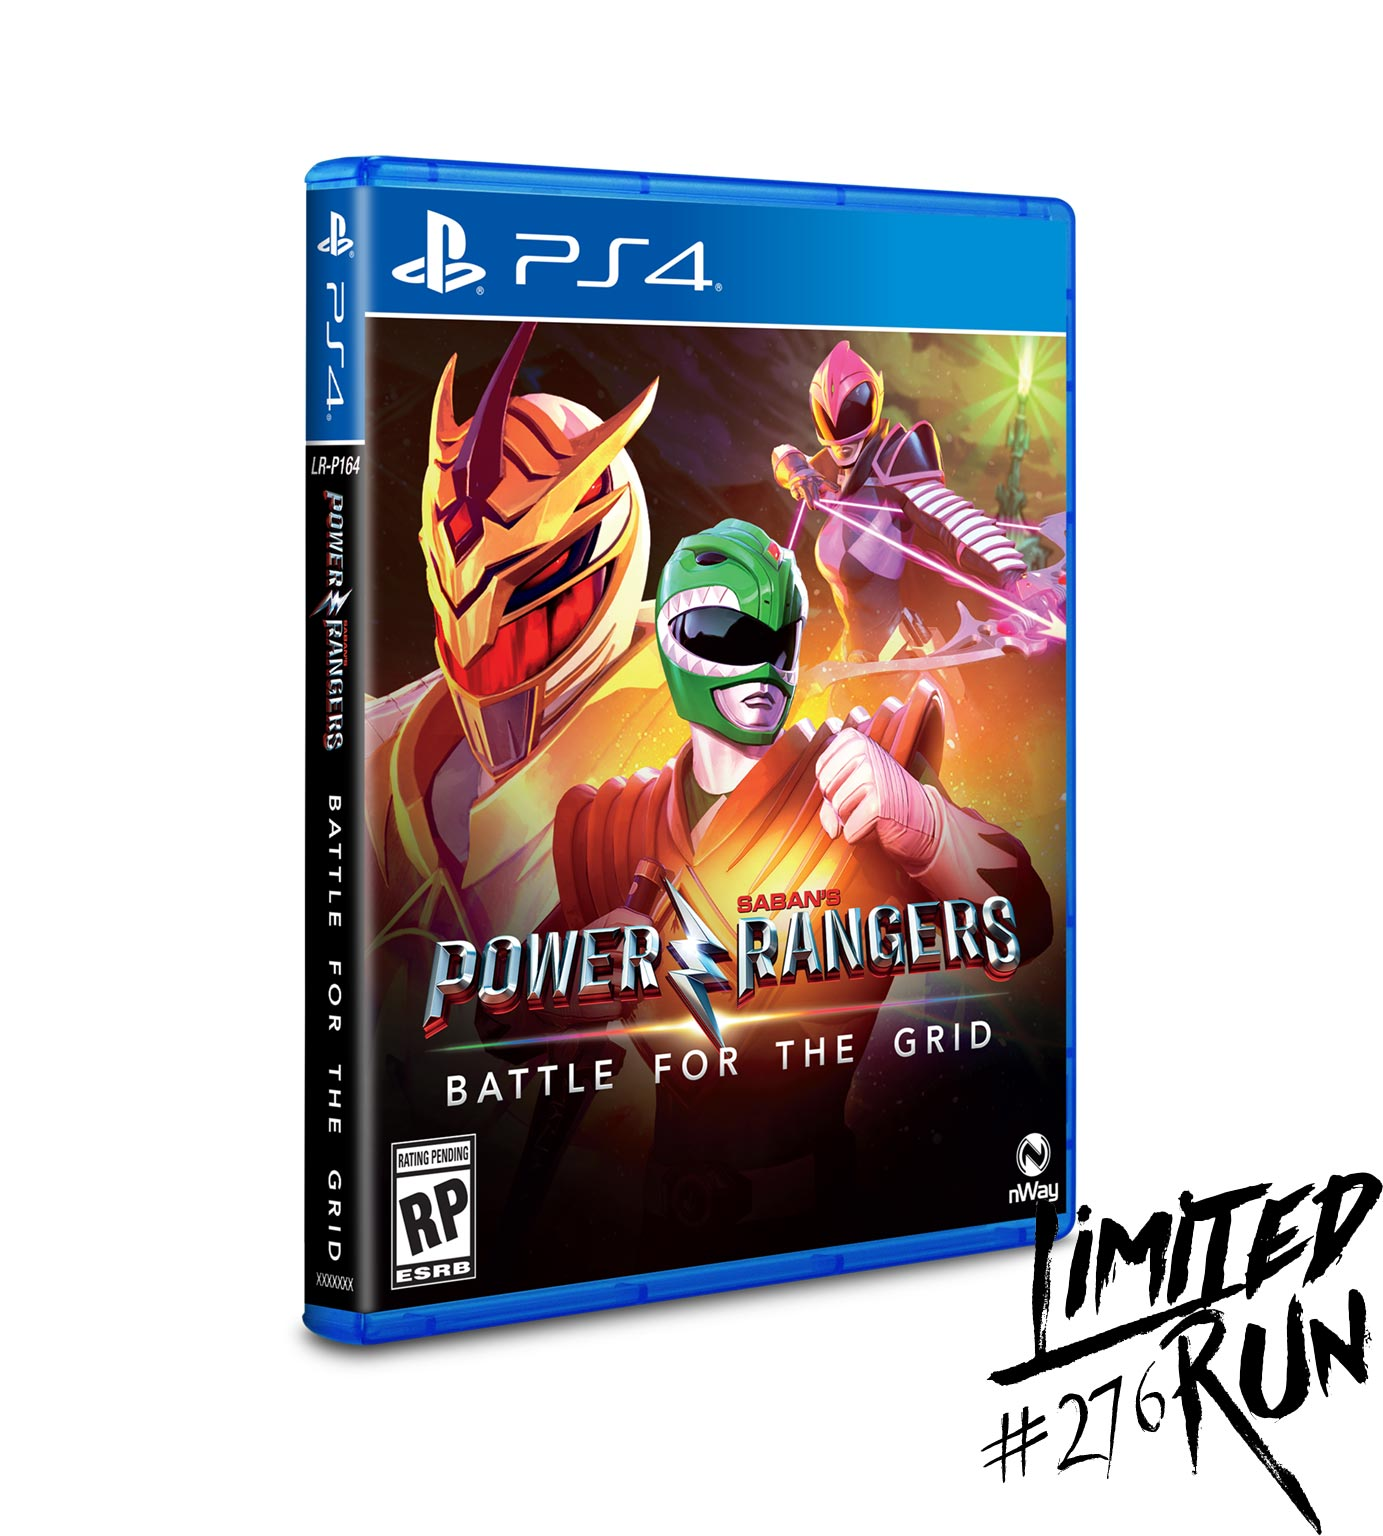 Power Rangers: Battle For the Grid physical release 2 out of 3 image gallery